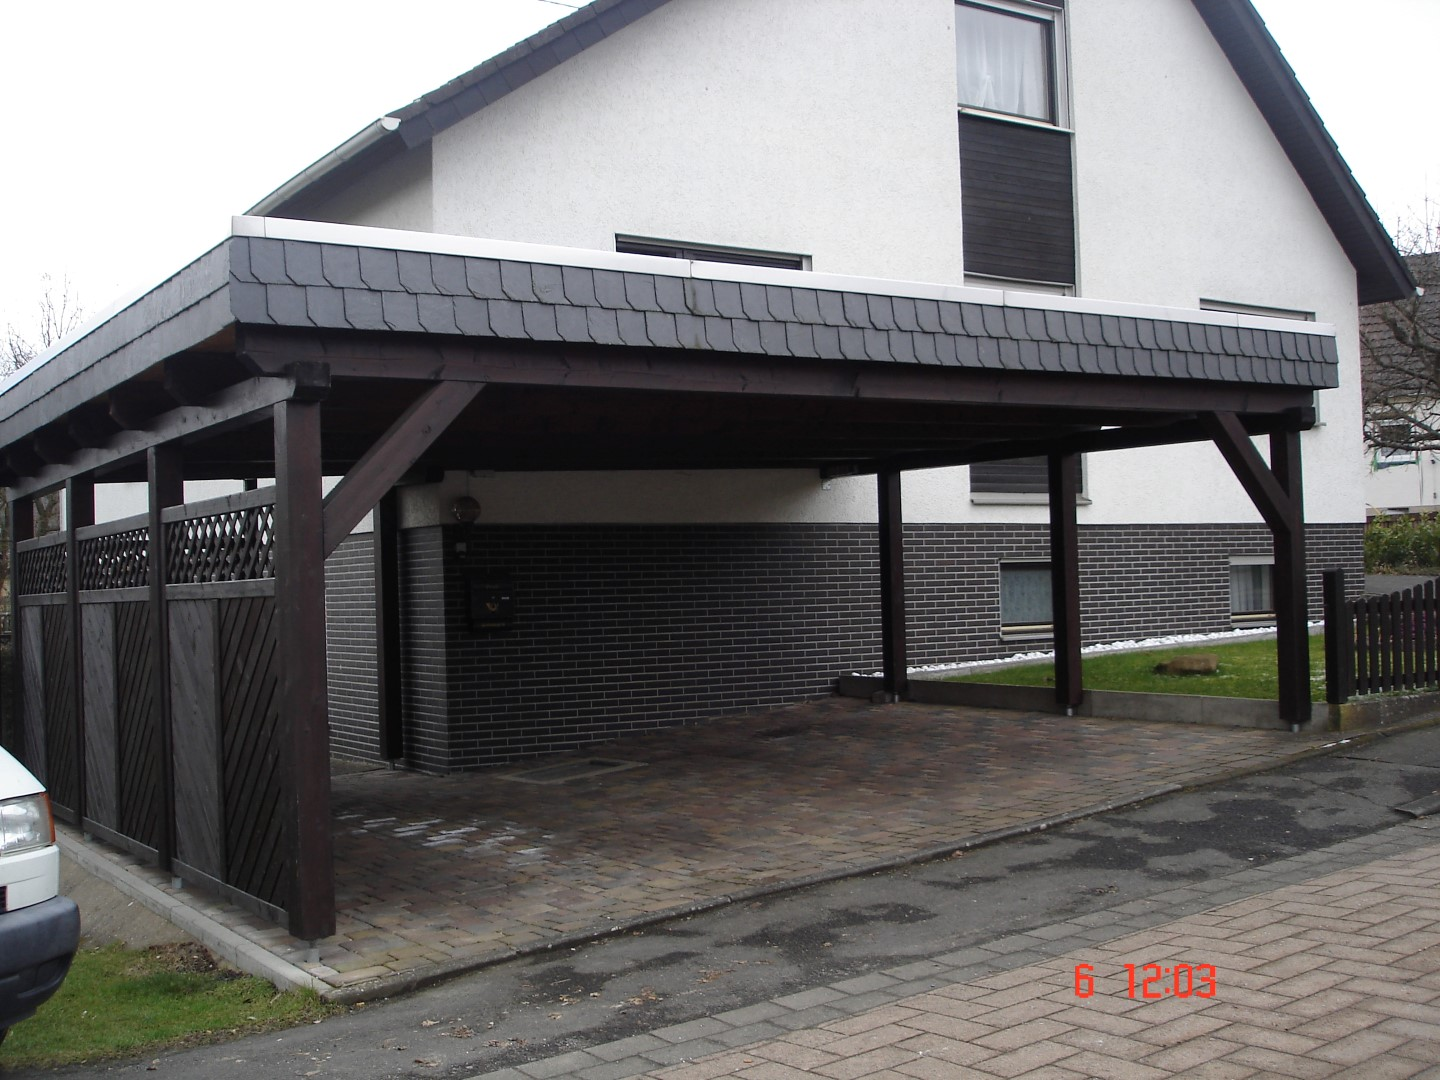 Carport-Holzhausen-2-1